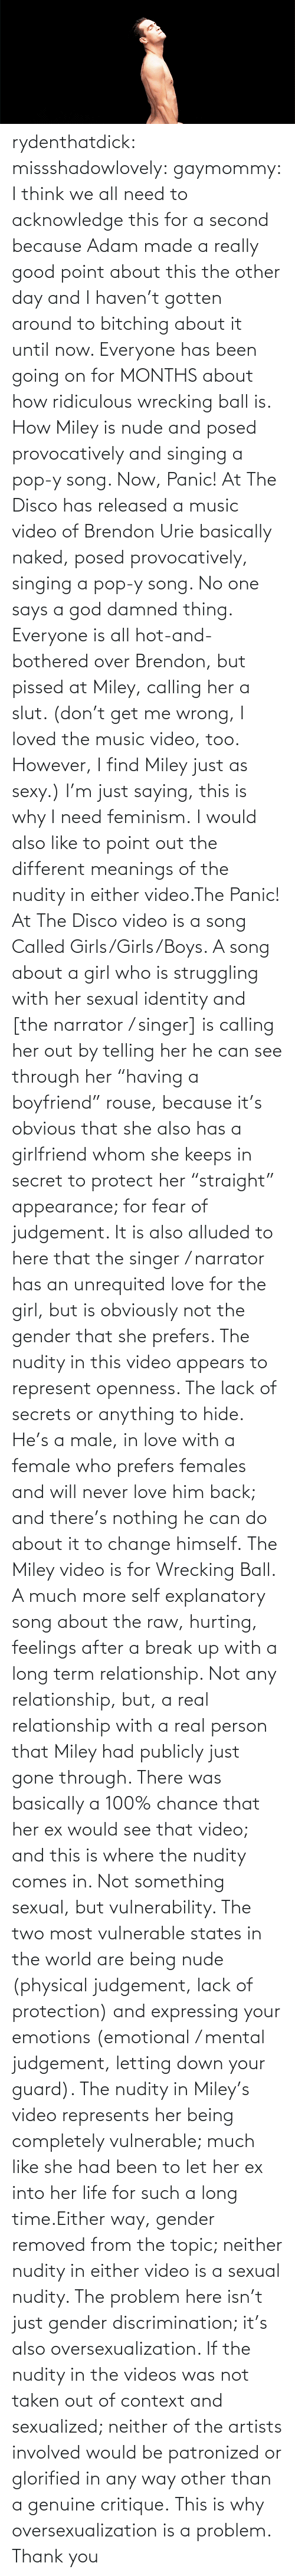 """wrecking ball: rydenthatdick:  missshadowlovely:  gaymommy:  I think we all need to acknowledge this for a second because Adam made a really good point about this the other day and I haven't gotten around to bitching about it until now. Everyone has been going on for MONTHS about how ridiculous wrecking ball is. How Miley is nude and posed provocatively and singing a pop-y song. Now, Panic! At The Disco has released a music video of Brendon Urie basically naked, posed provocatively, singing a pop-y song. No one says a god damned thing. Everyone is all hot-and-bothered over Brendon, but pissed at Miley, calling her a slut. (don't get me wrong, I loved the music video, too. However, I find Miley just as sexy.) I'm just saying, this is why I need feminism.  I would also like to point out the different meanings of the nudity in either video.The Panic! At The Disco video is a song Called Girls/Girls/Boys. A song about a girl who is struggling with her sexual identity and [the narrator / singer] is calling her out by telling her he can see through her """"having a boyfriend"""" rouse, because it's obvious that she also has a girlfriend whom she keeps in secret to protect her """"straight"""" appearance; for fear of judgement. It is also alluded to here that the singer / narrator has an unrequited love for the girl, but is obviously not the gender that she prefers. The nudity in this video appears to represent openness. The lack of secrets or anything to hide. He's a male, in love with a female who prefers females and will never love him back; and there's nothing he can do about it to change himself. The Miley video is for Wrecking Ball. A much more self explanatory song about the raw, hurting, feelings after a break up with a long term relationship. Not any relationship, but, a real relationship with a real person that Miley had publicly just gone through. There was basically a 100% chance that her ex would see that video; and this is where the nudity comes in. Not something sexual, """